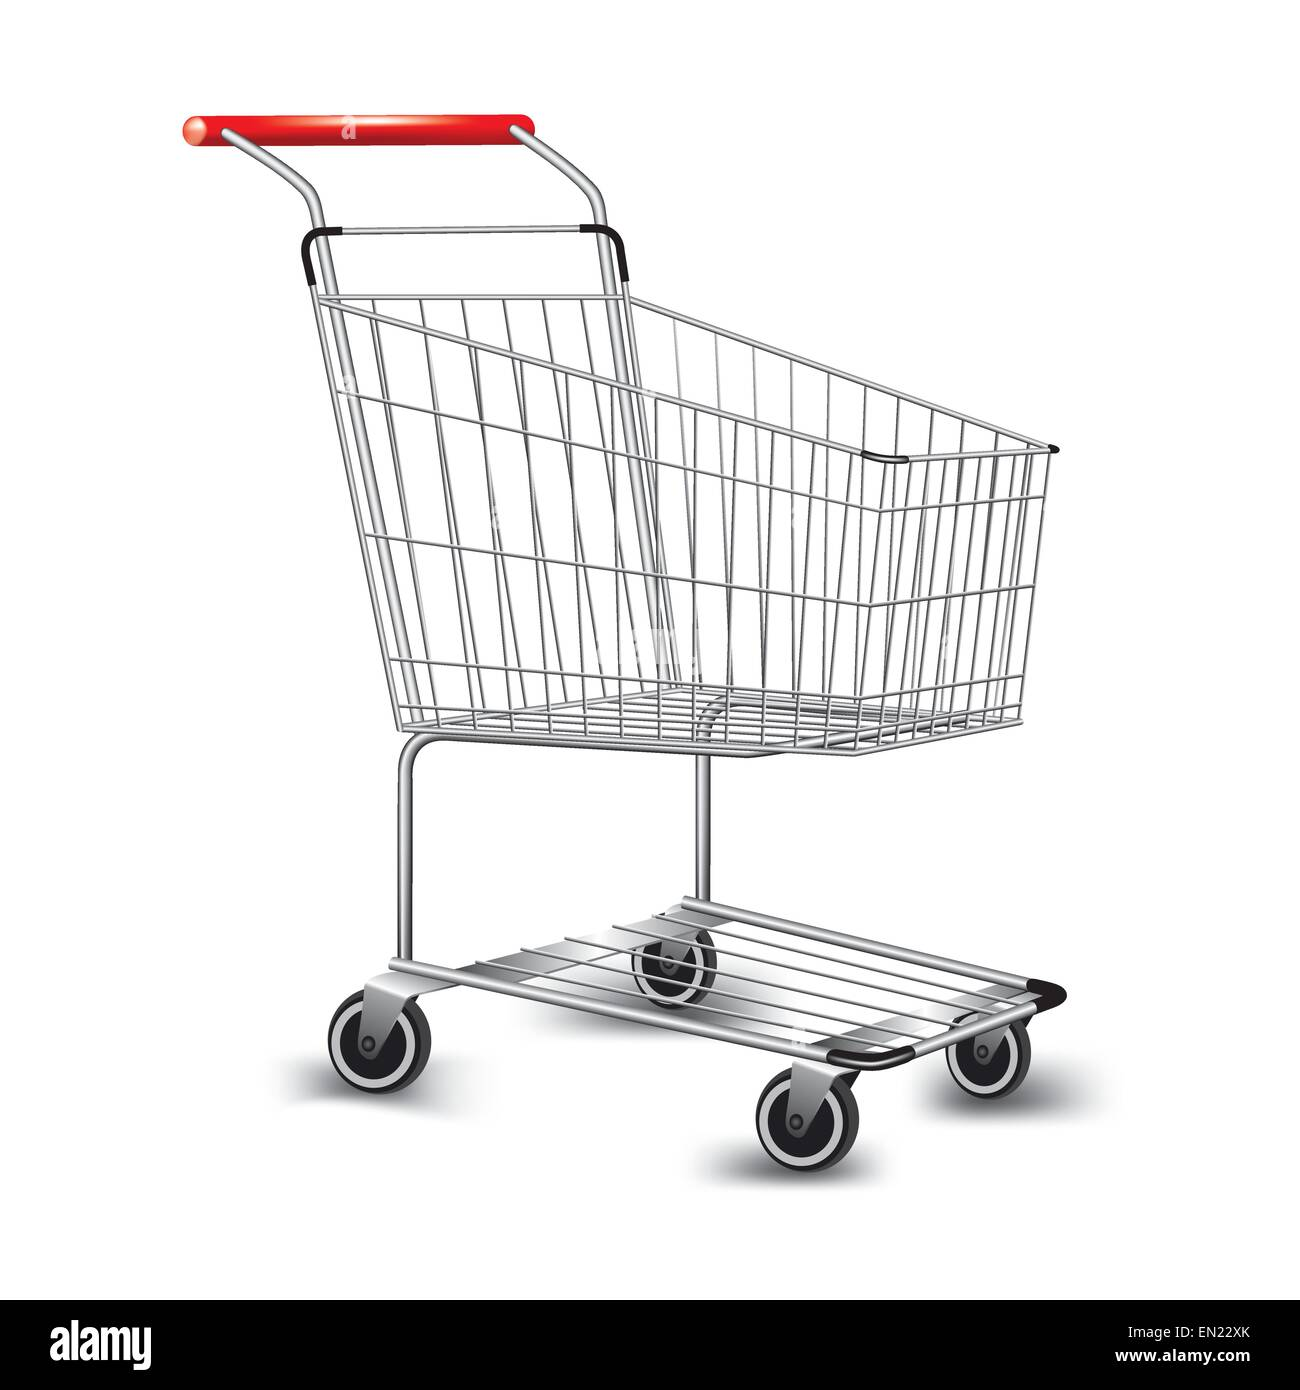 Empty supermarket shopping cart. Vector illustration - Stock Vector